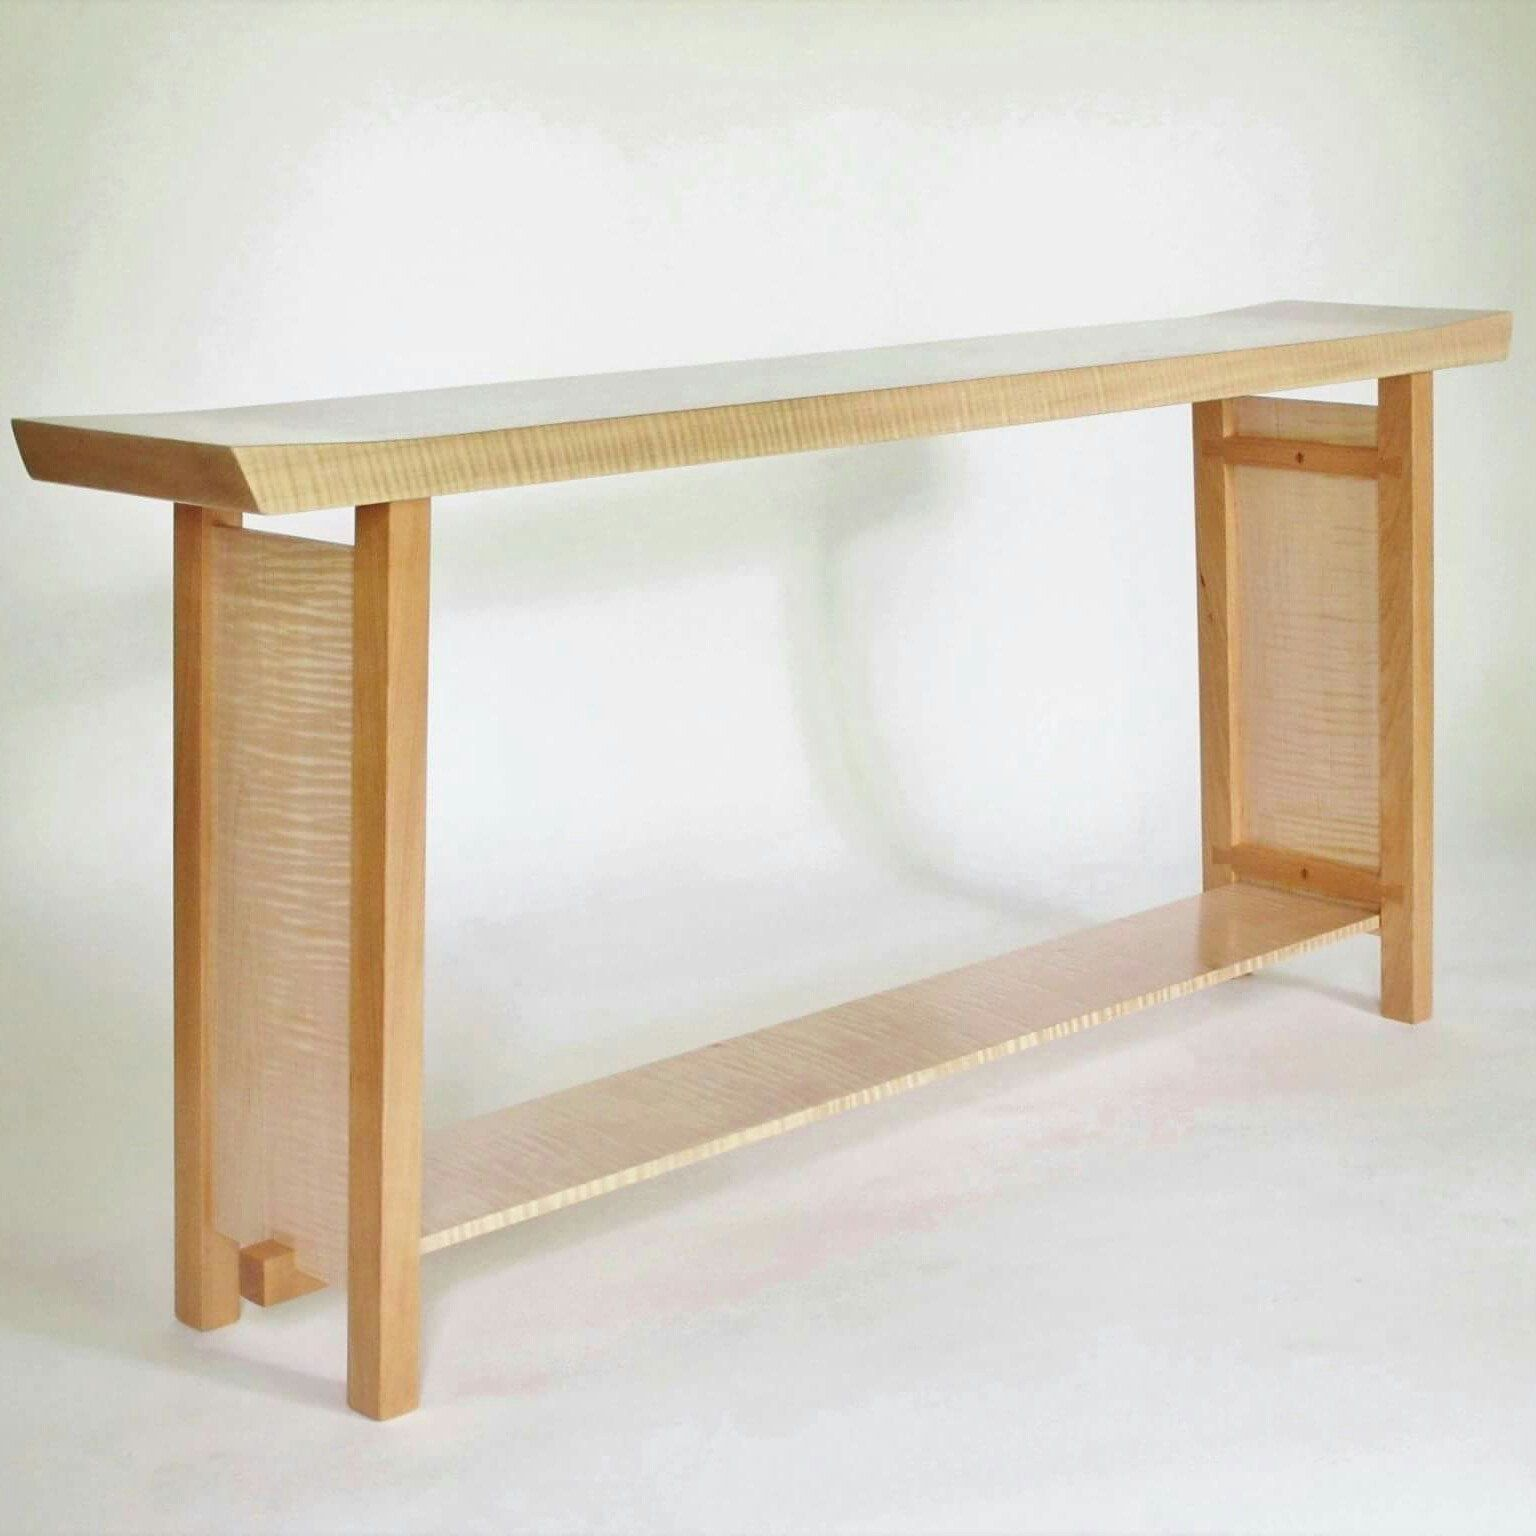 Handmade Entrance Table Tall Entry Table Small Narrow Console